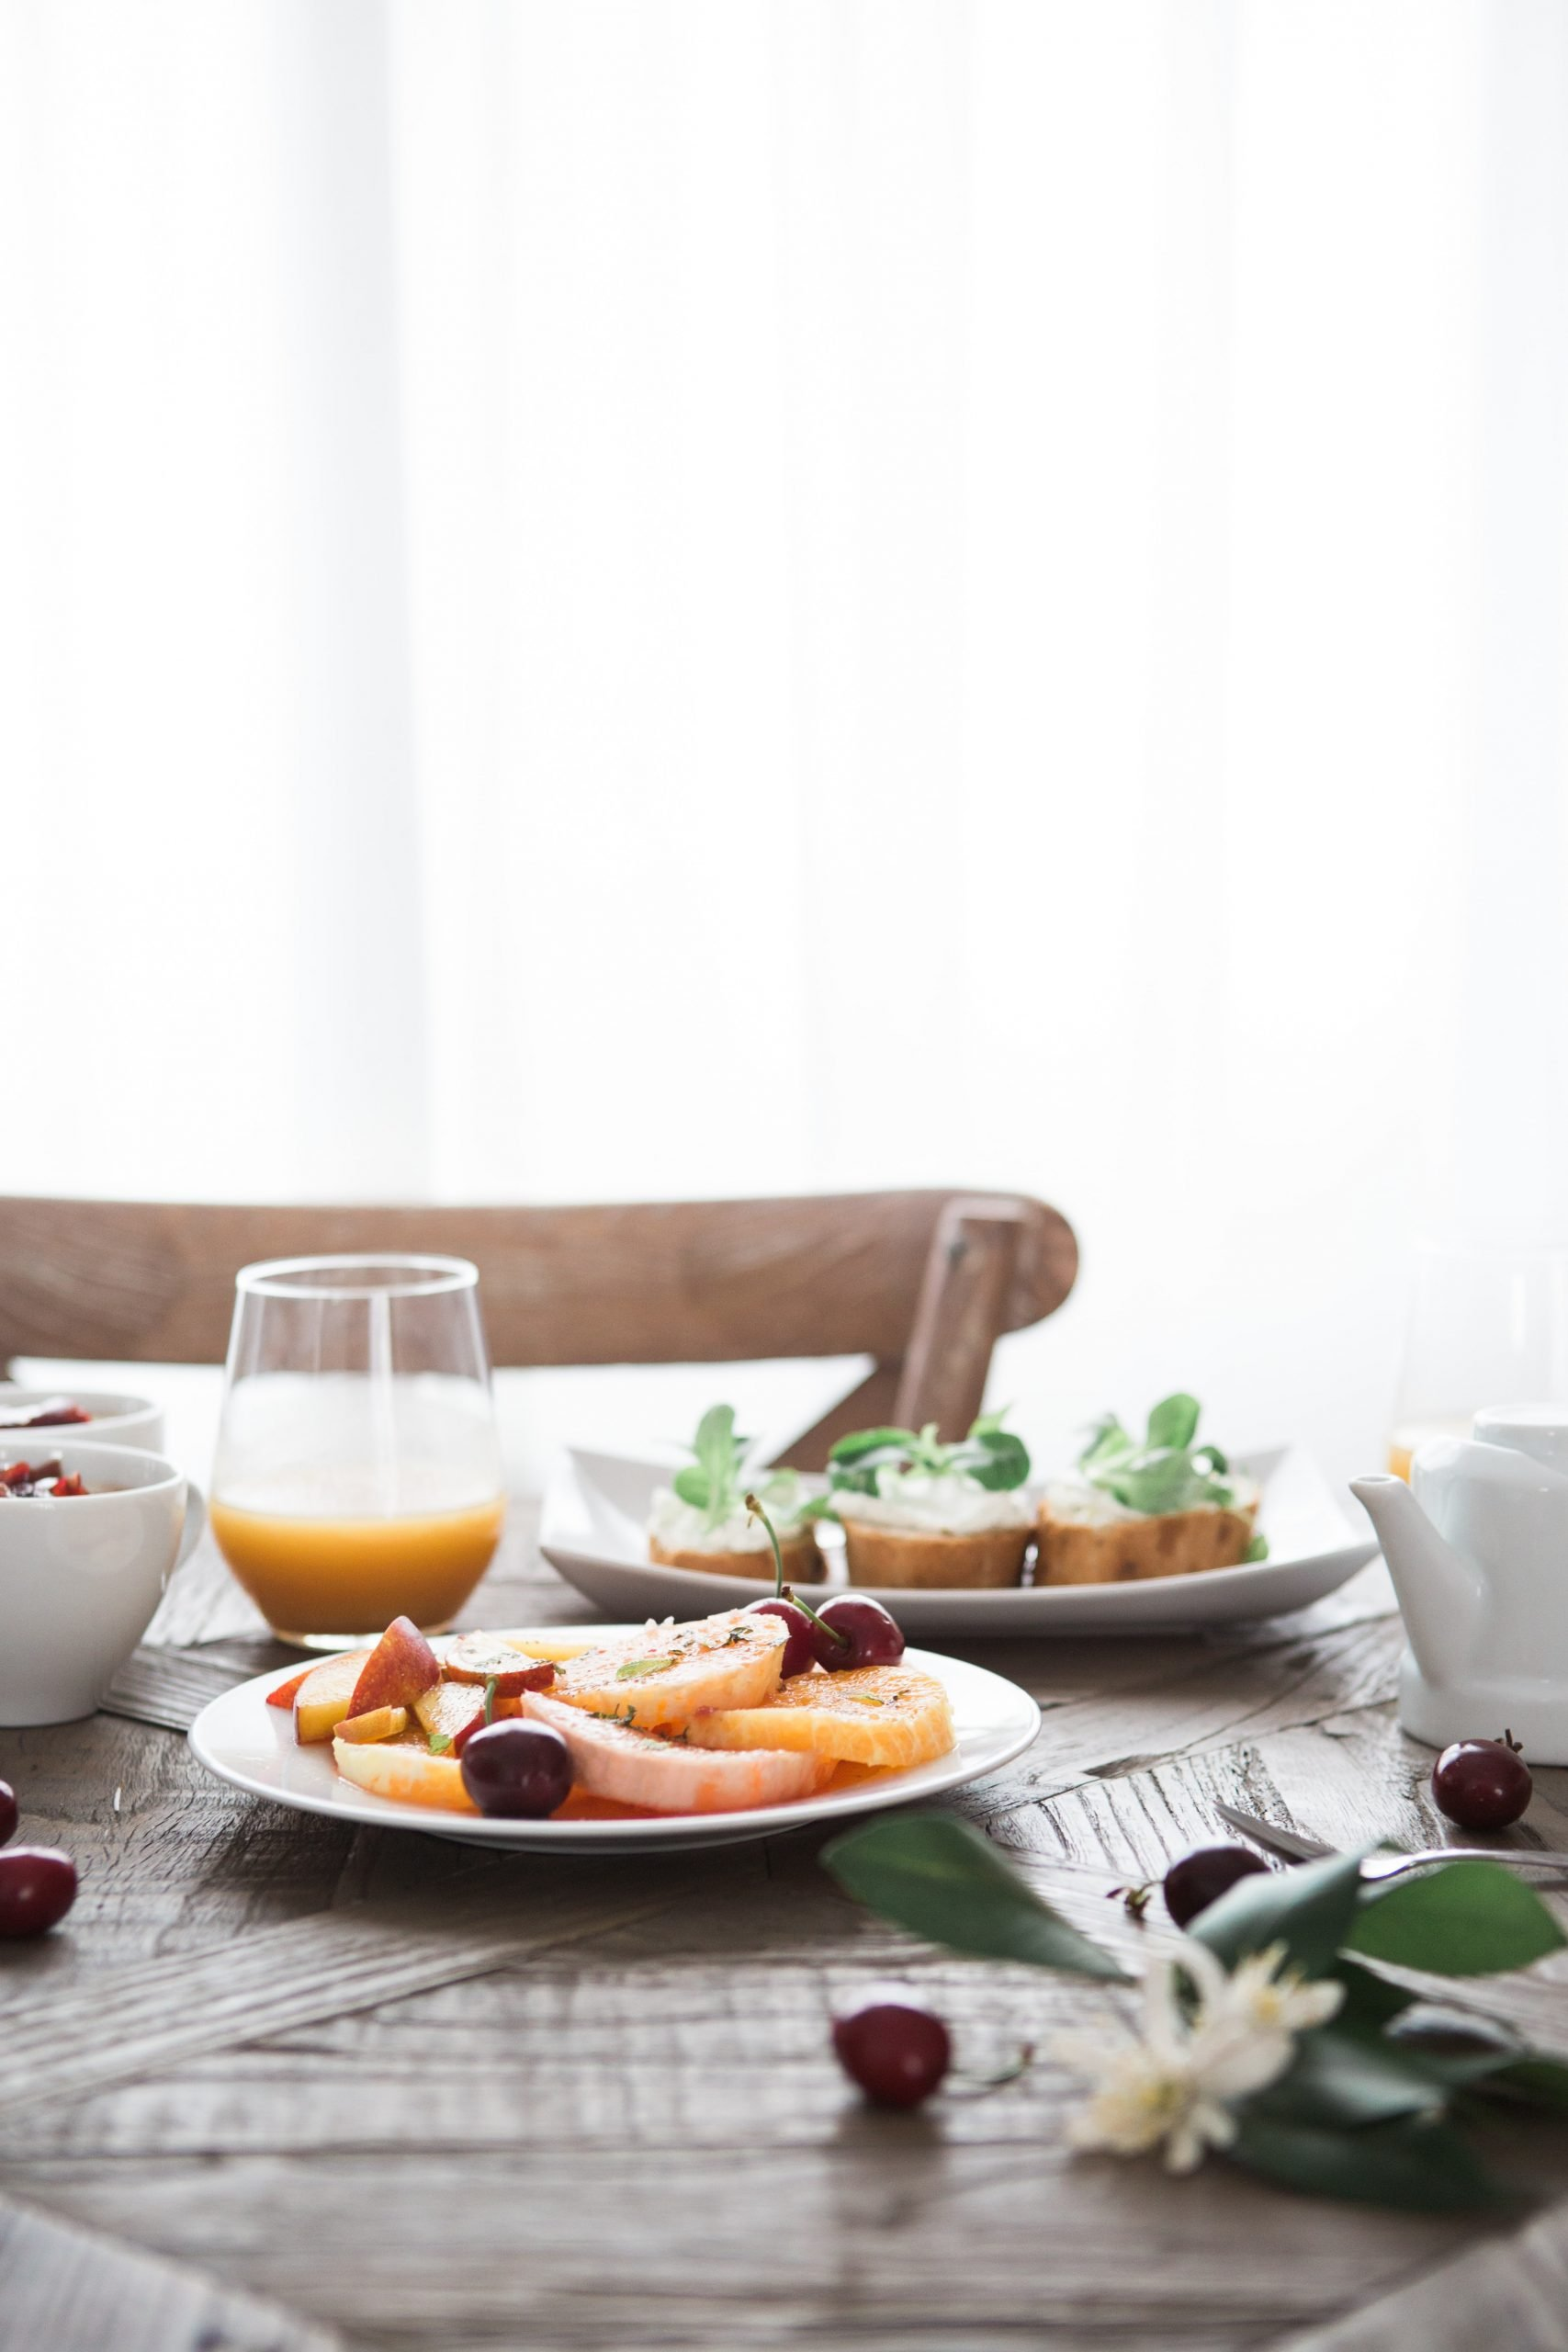 table setting with fruit and toast and juice